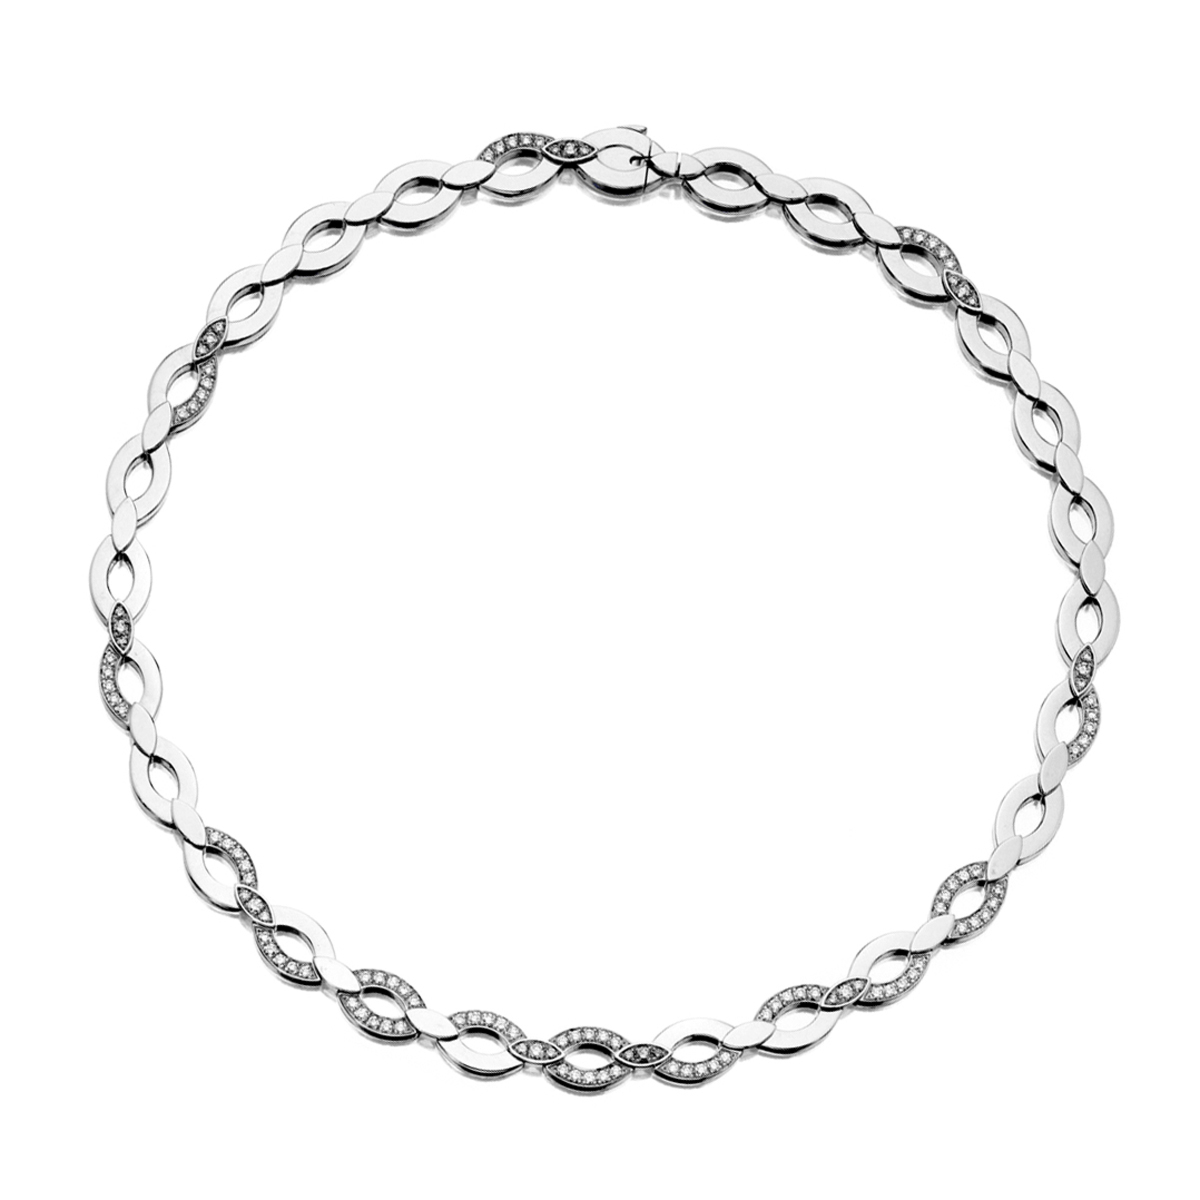 Cartier Diadea Diamond White Gold Necklace - Cartier Jewelry